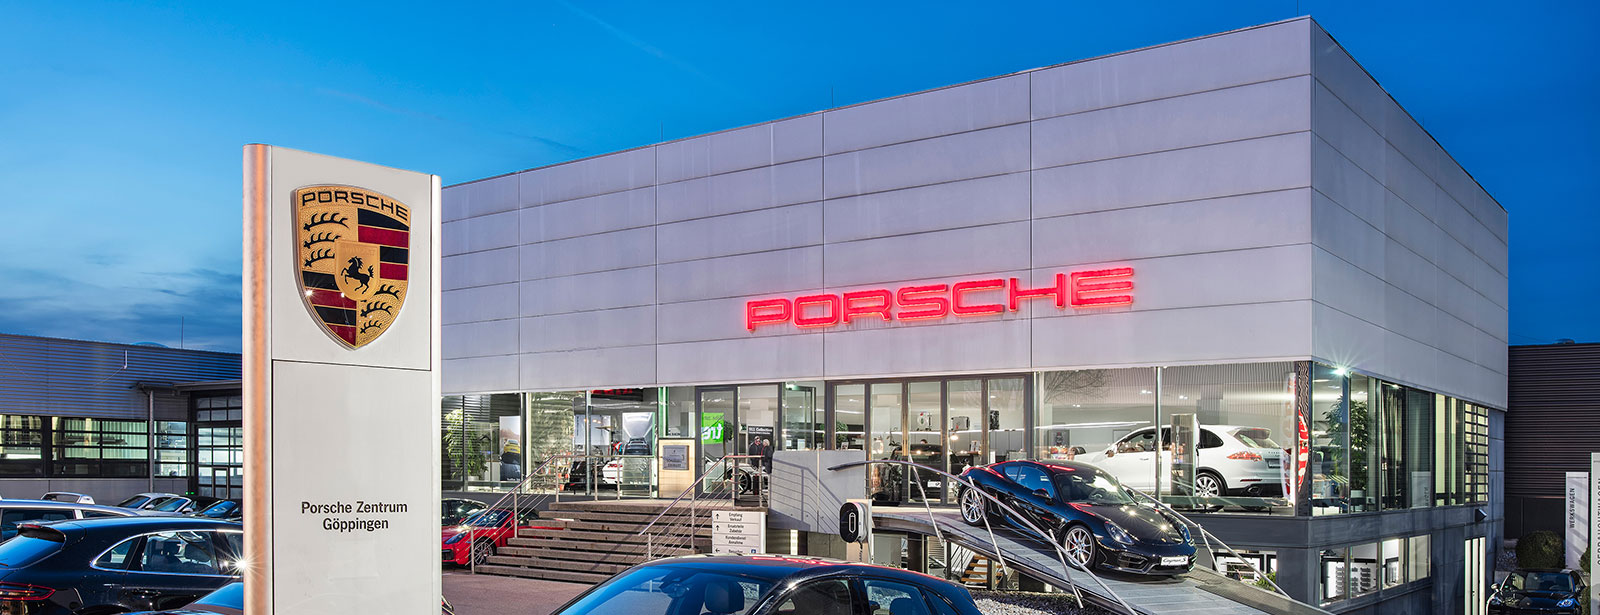 Porsche Centre Göppingen